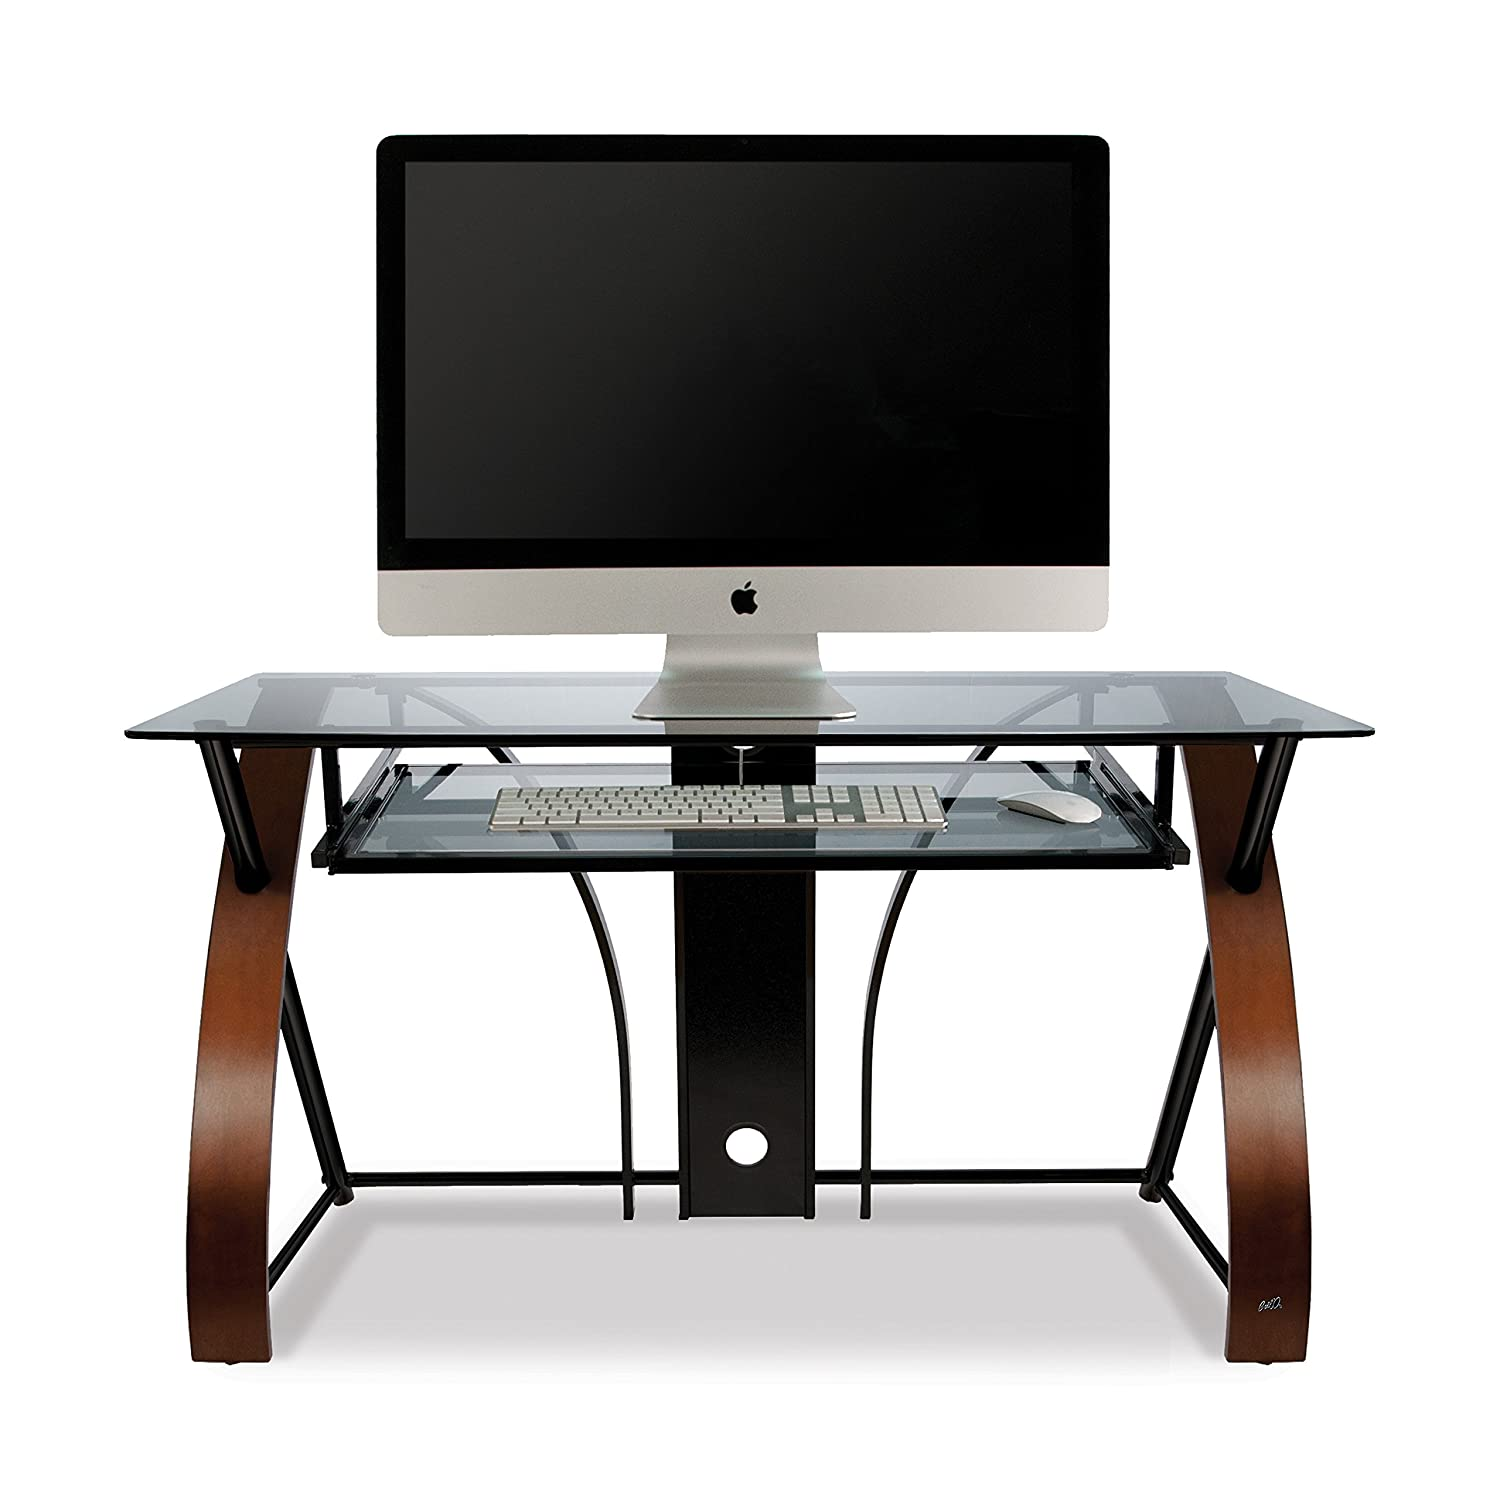 bell o cd8841 curved wood metal and glass computer desk amazon co